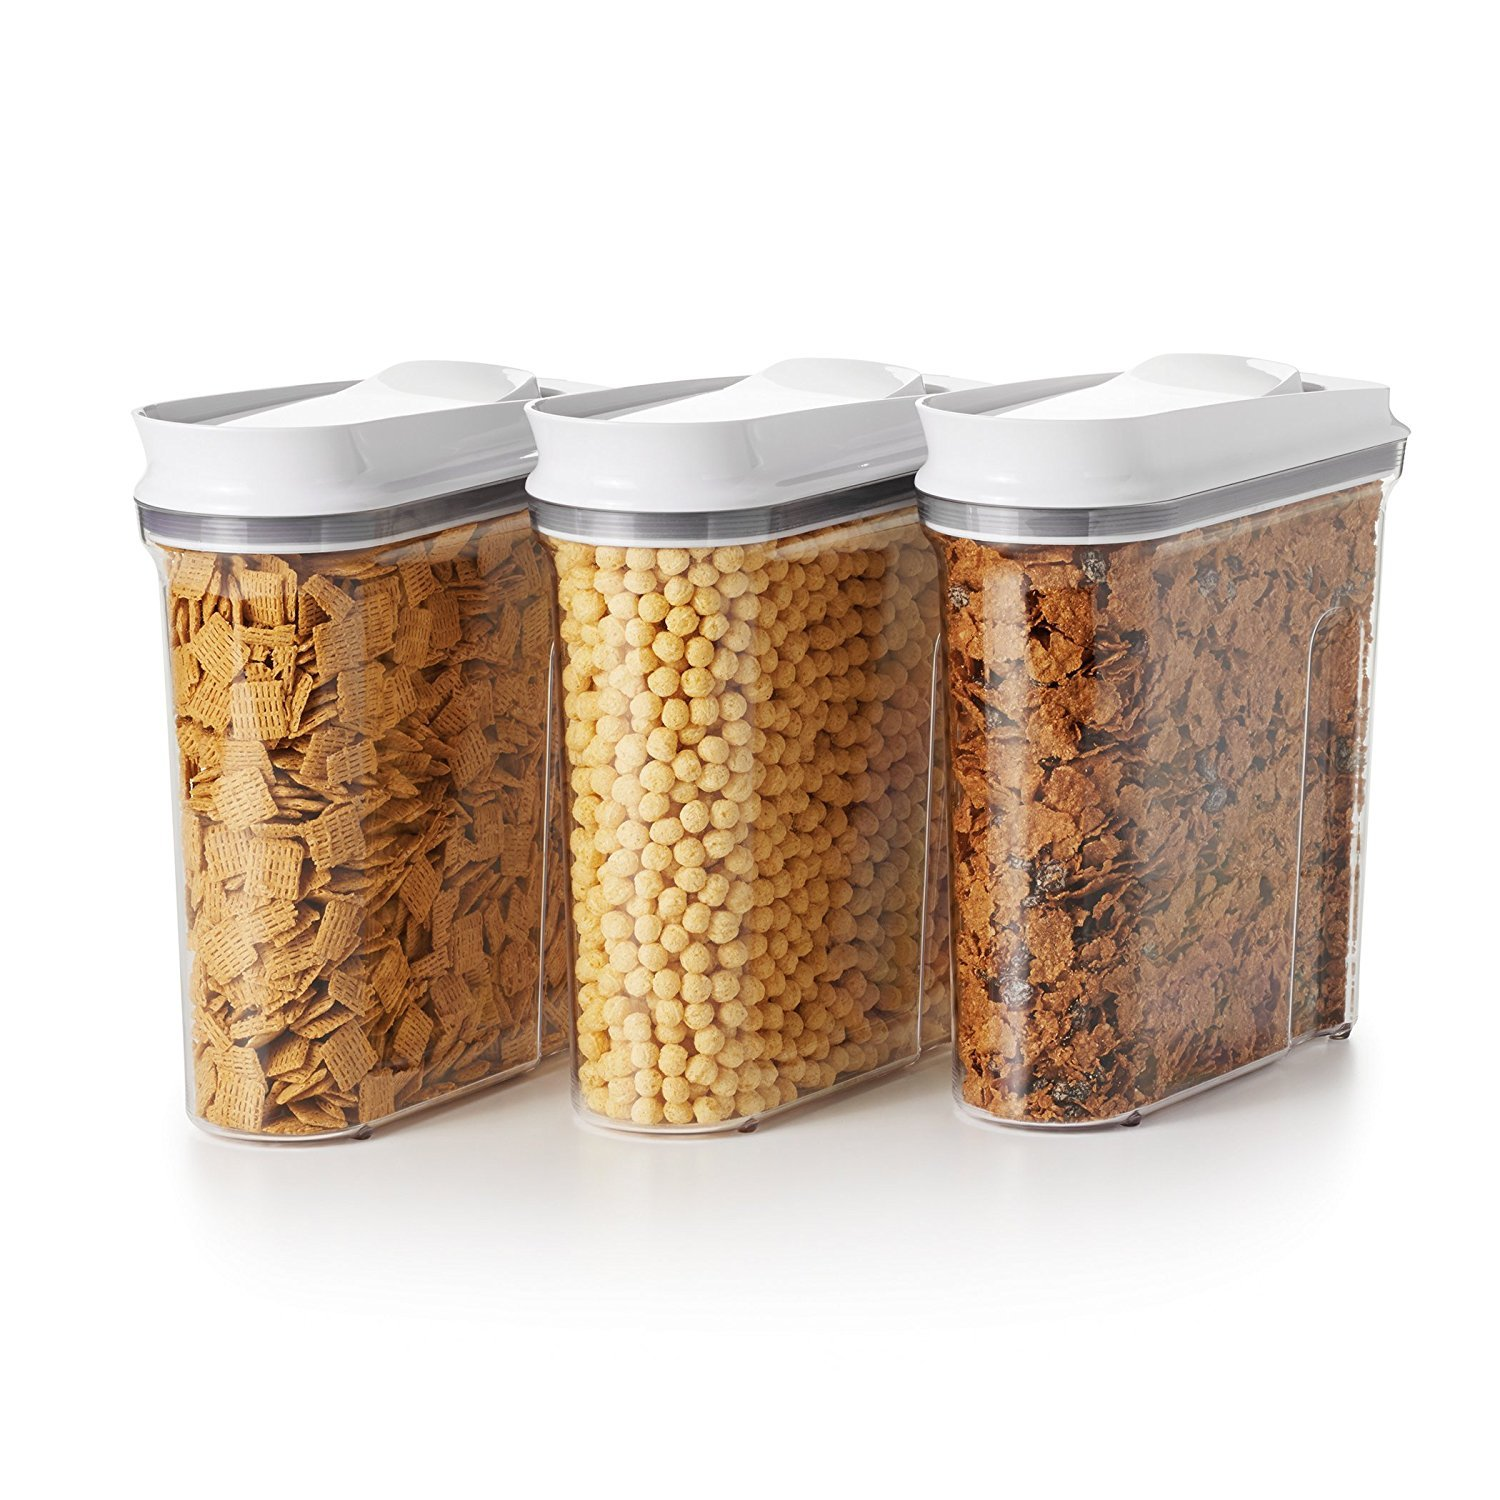 OXO Good Grips 3 Piece Cereal Dispenser Set 11180800